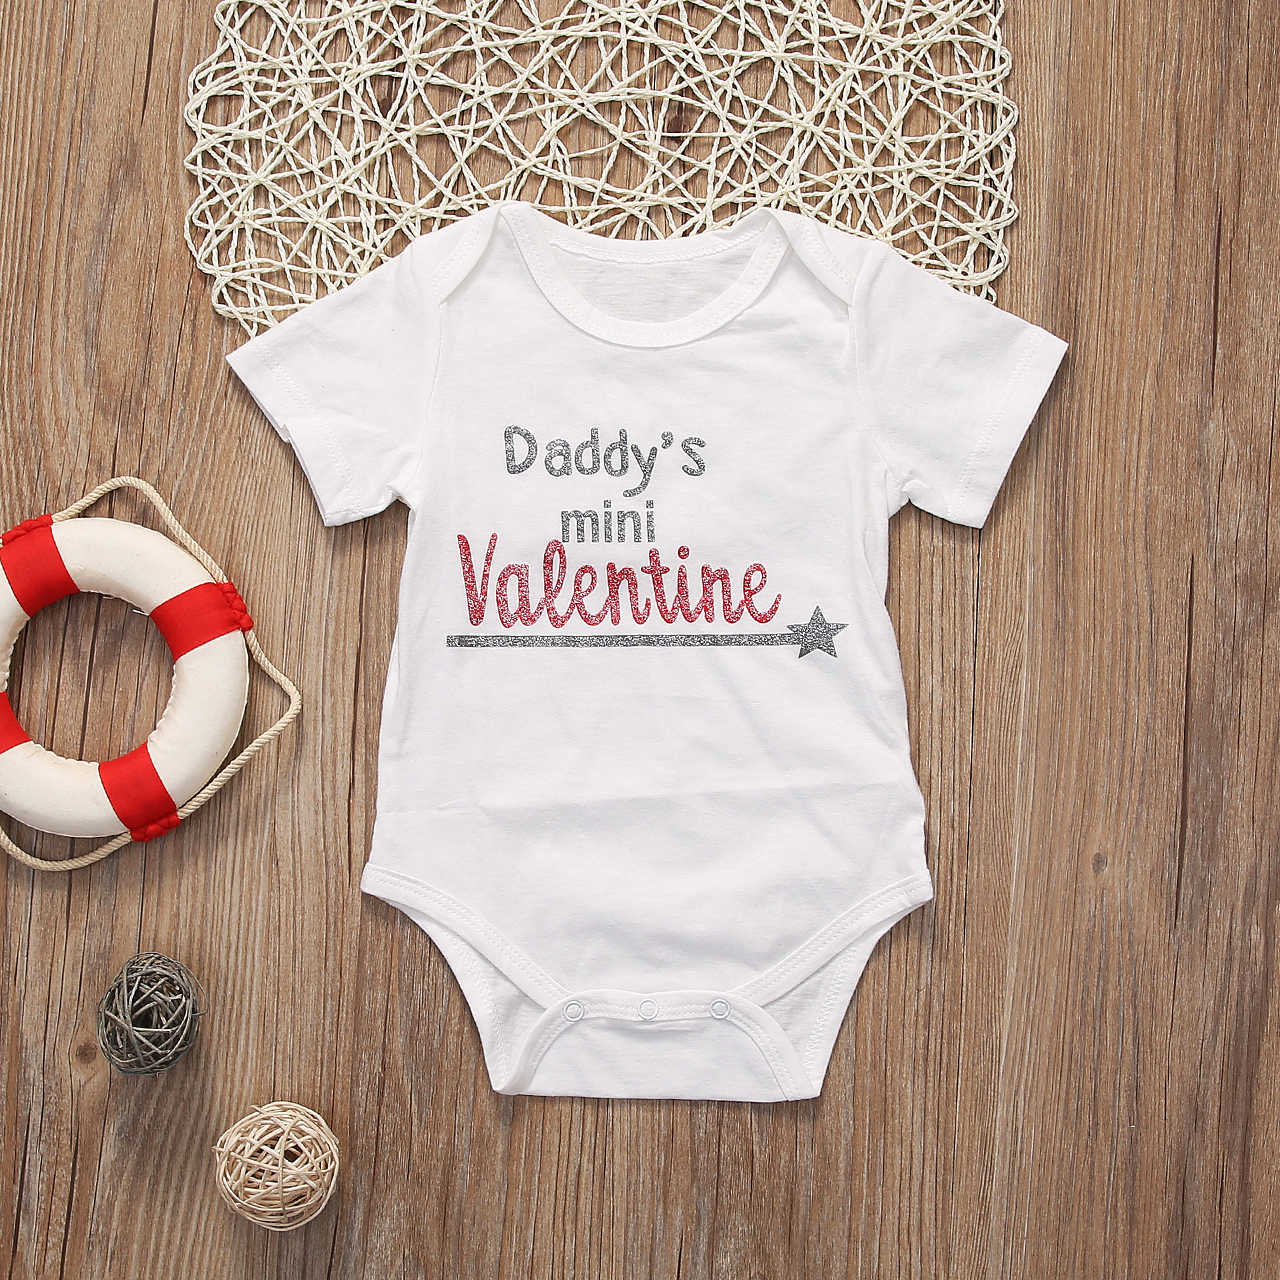 3bd55dbf0 ... Newborn Baby Girl Daddy's mini Valentine Bodysuit Jumpsuit Fitness  Outfit Clothes ...